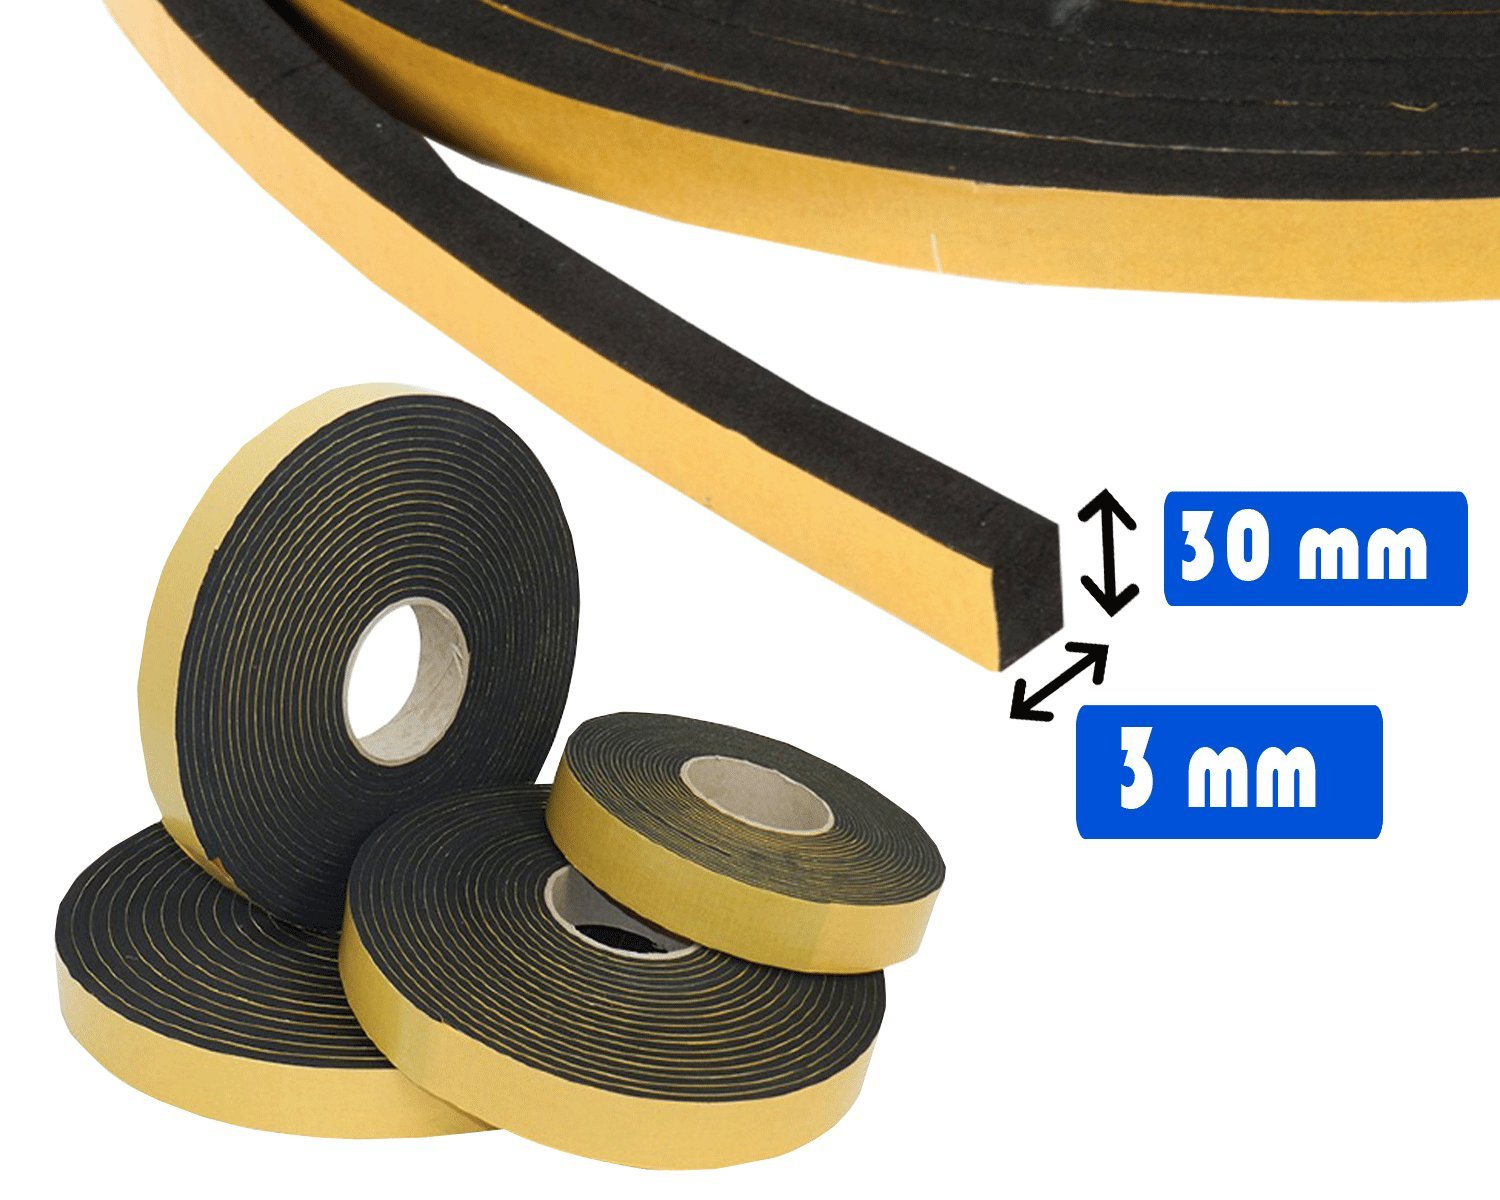 Guidetti Service® Neoprene Black Adhesive Seal 3 mm - 10-metre Roll